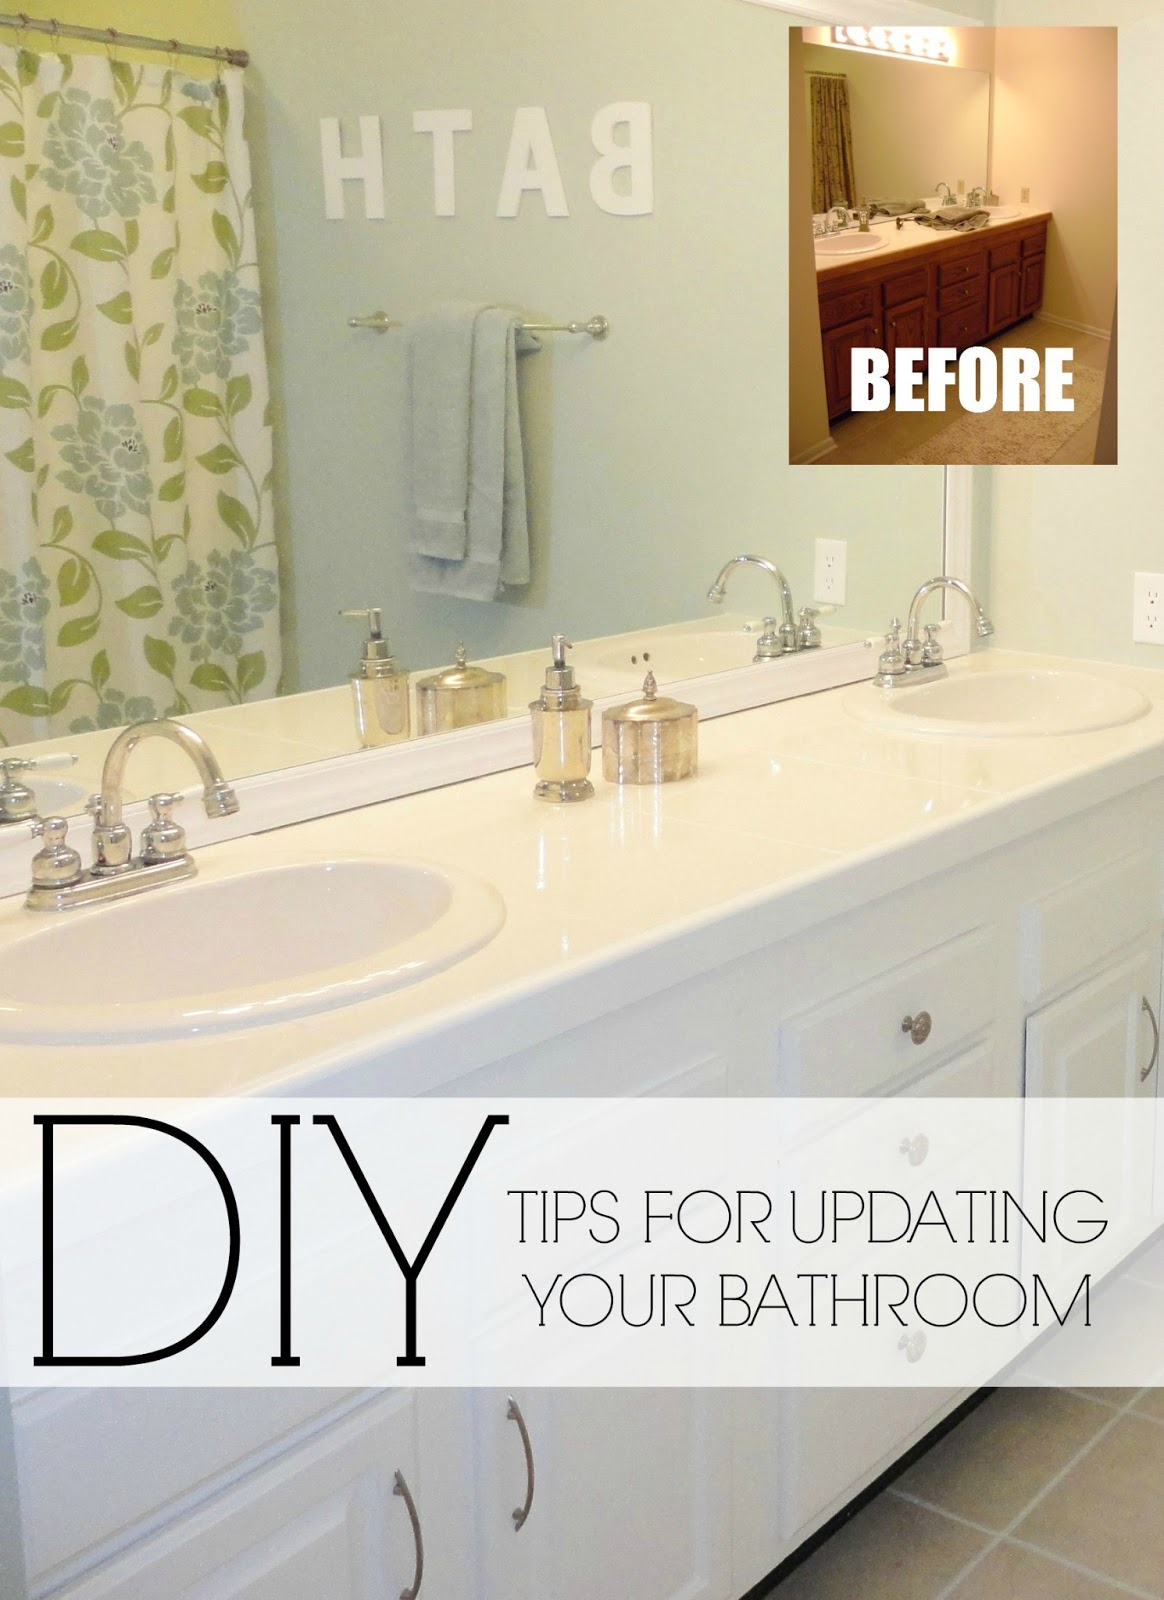 Home design ideas bathroom decorating ideas on a budget for Bathroom decorating tips